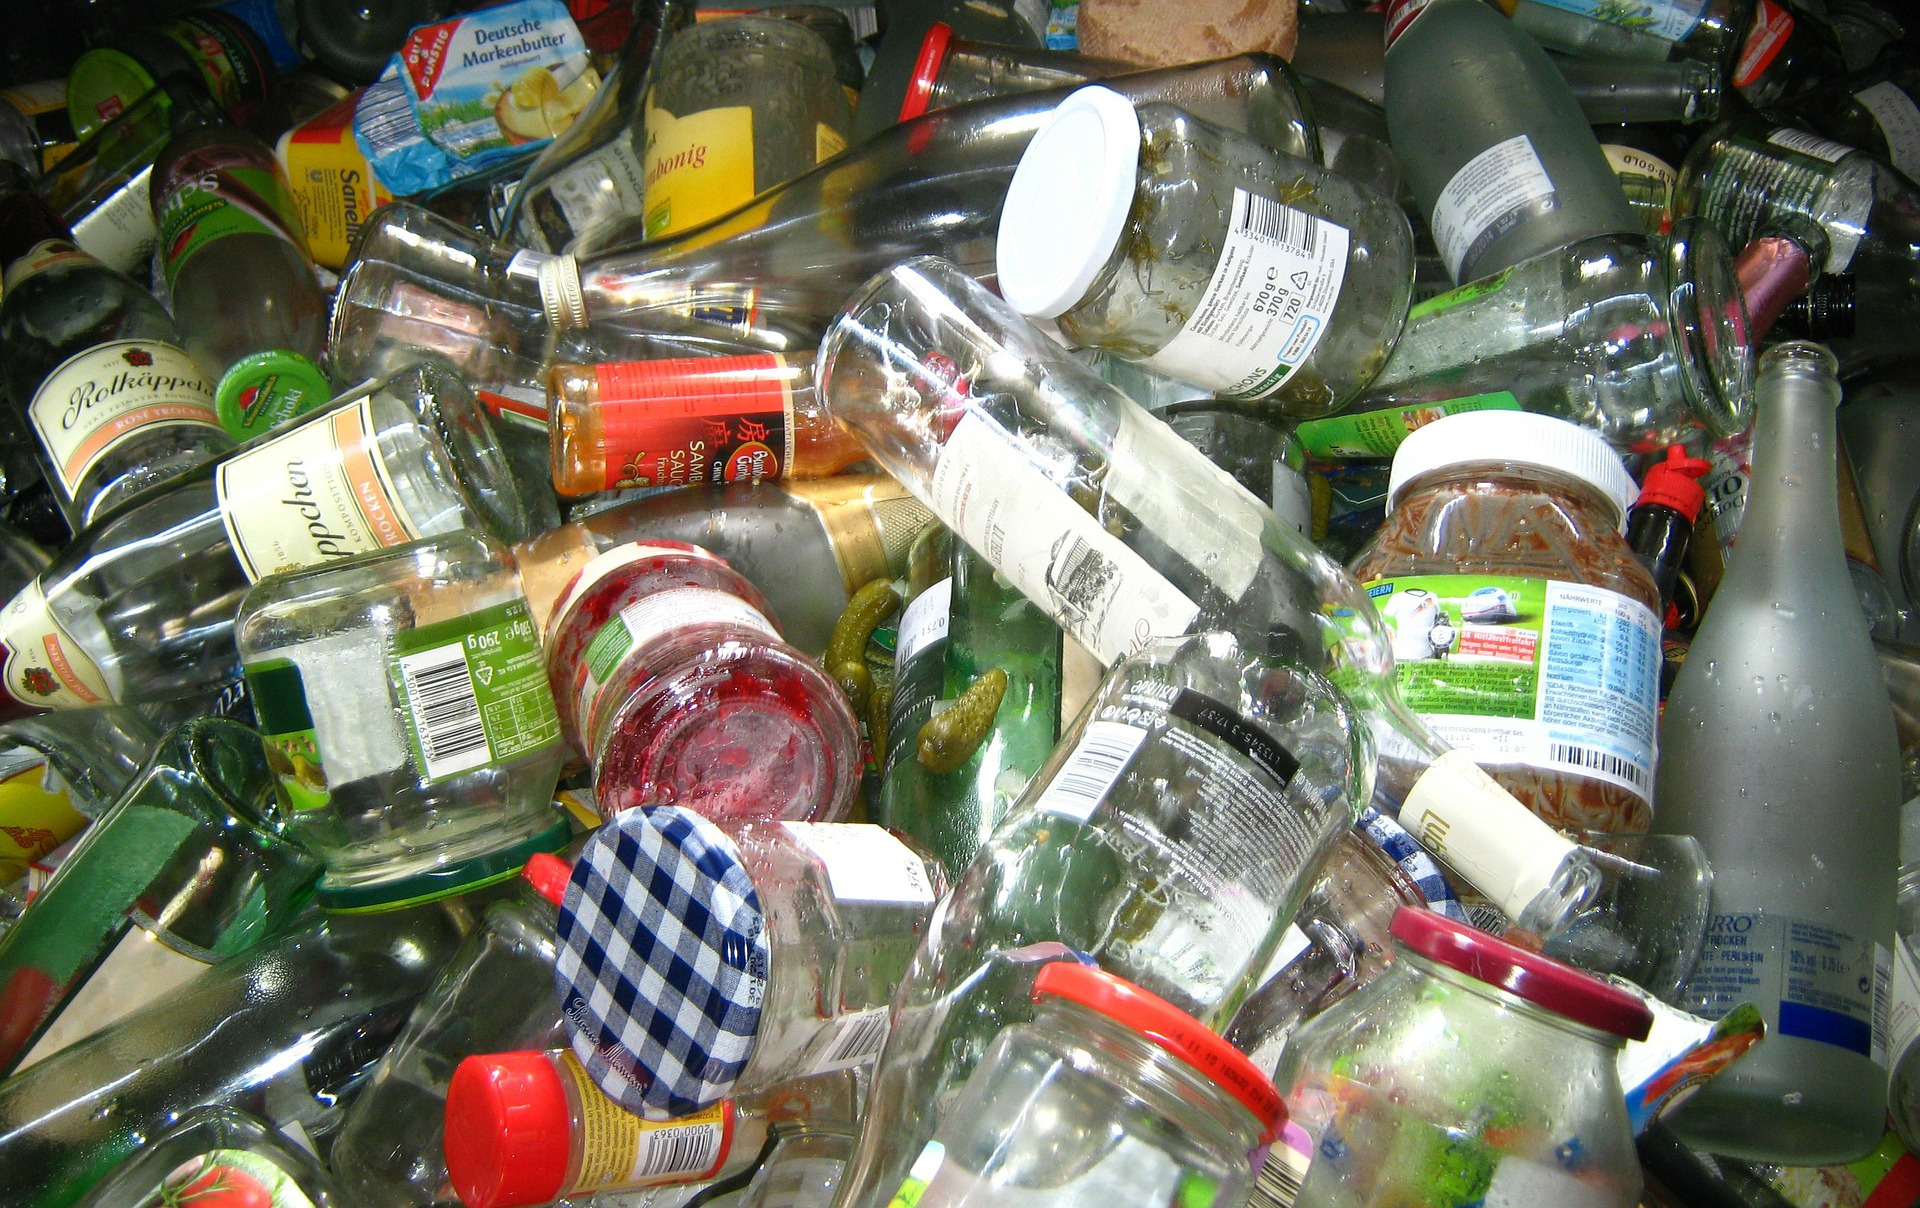 National Audit Office Report finds concerns with UK packaging waste system